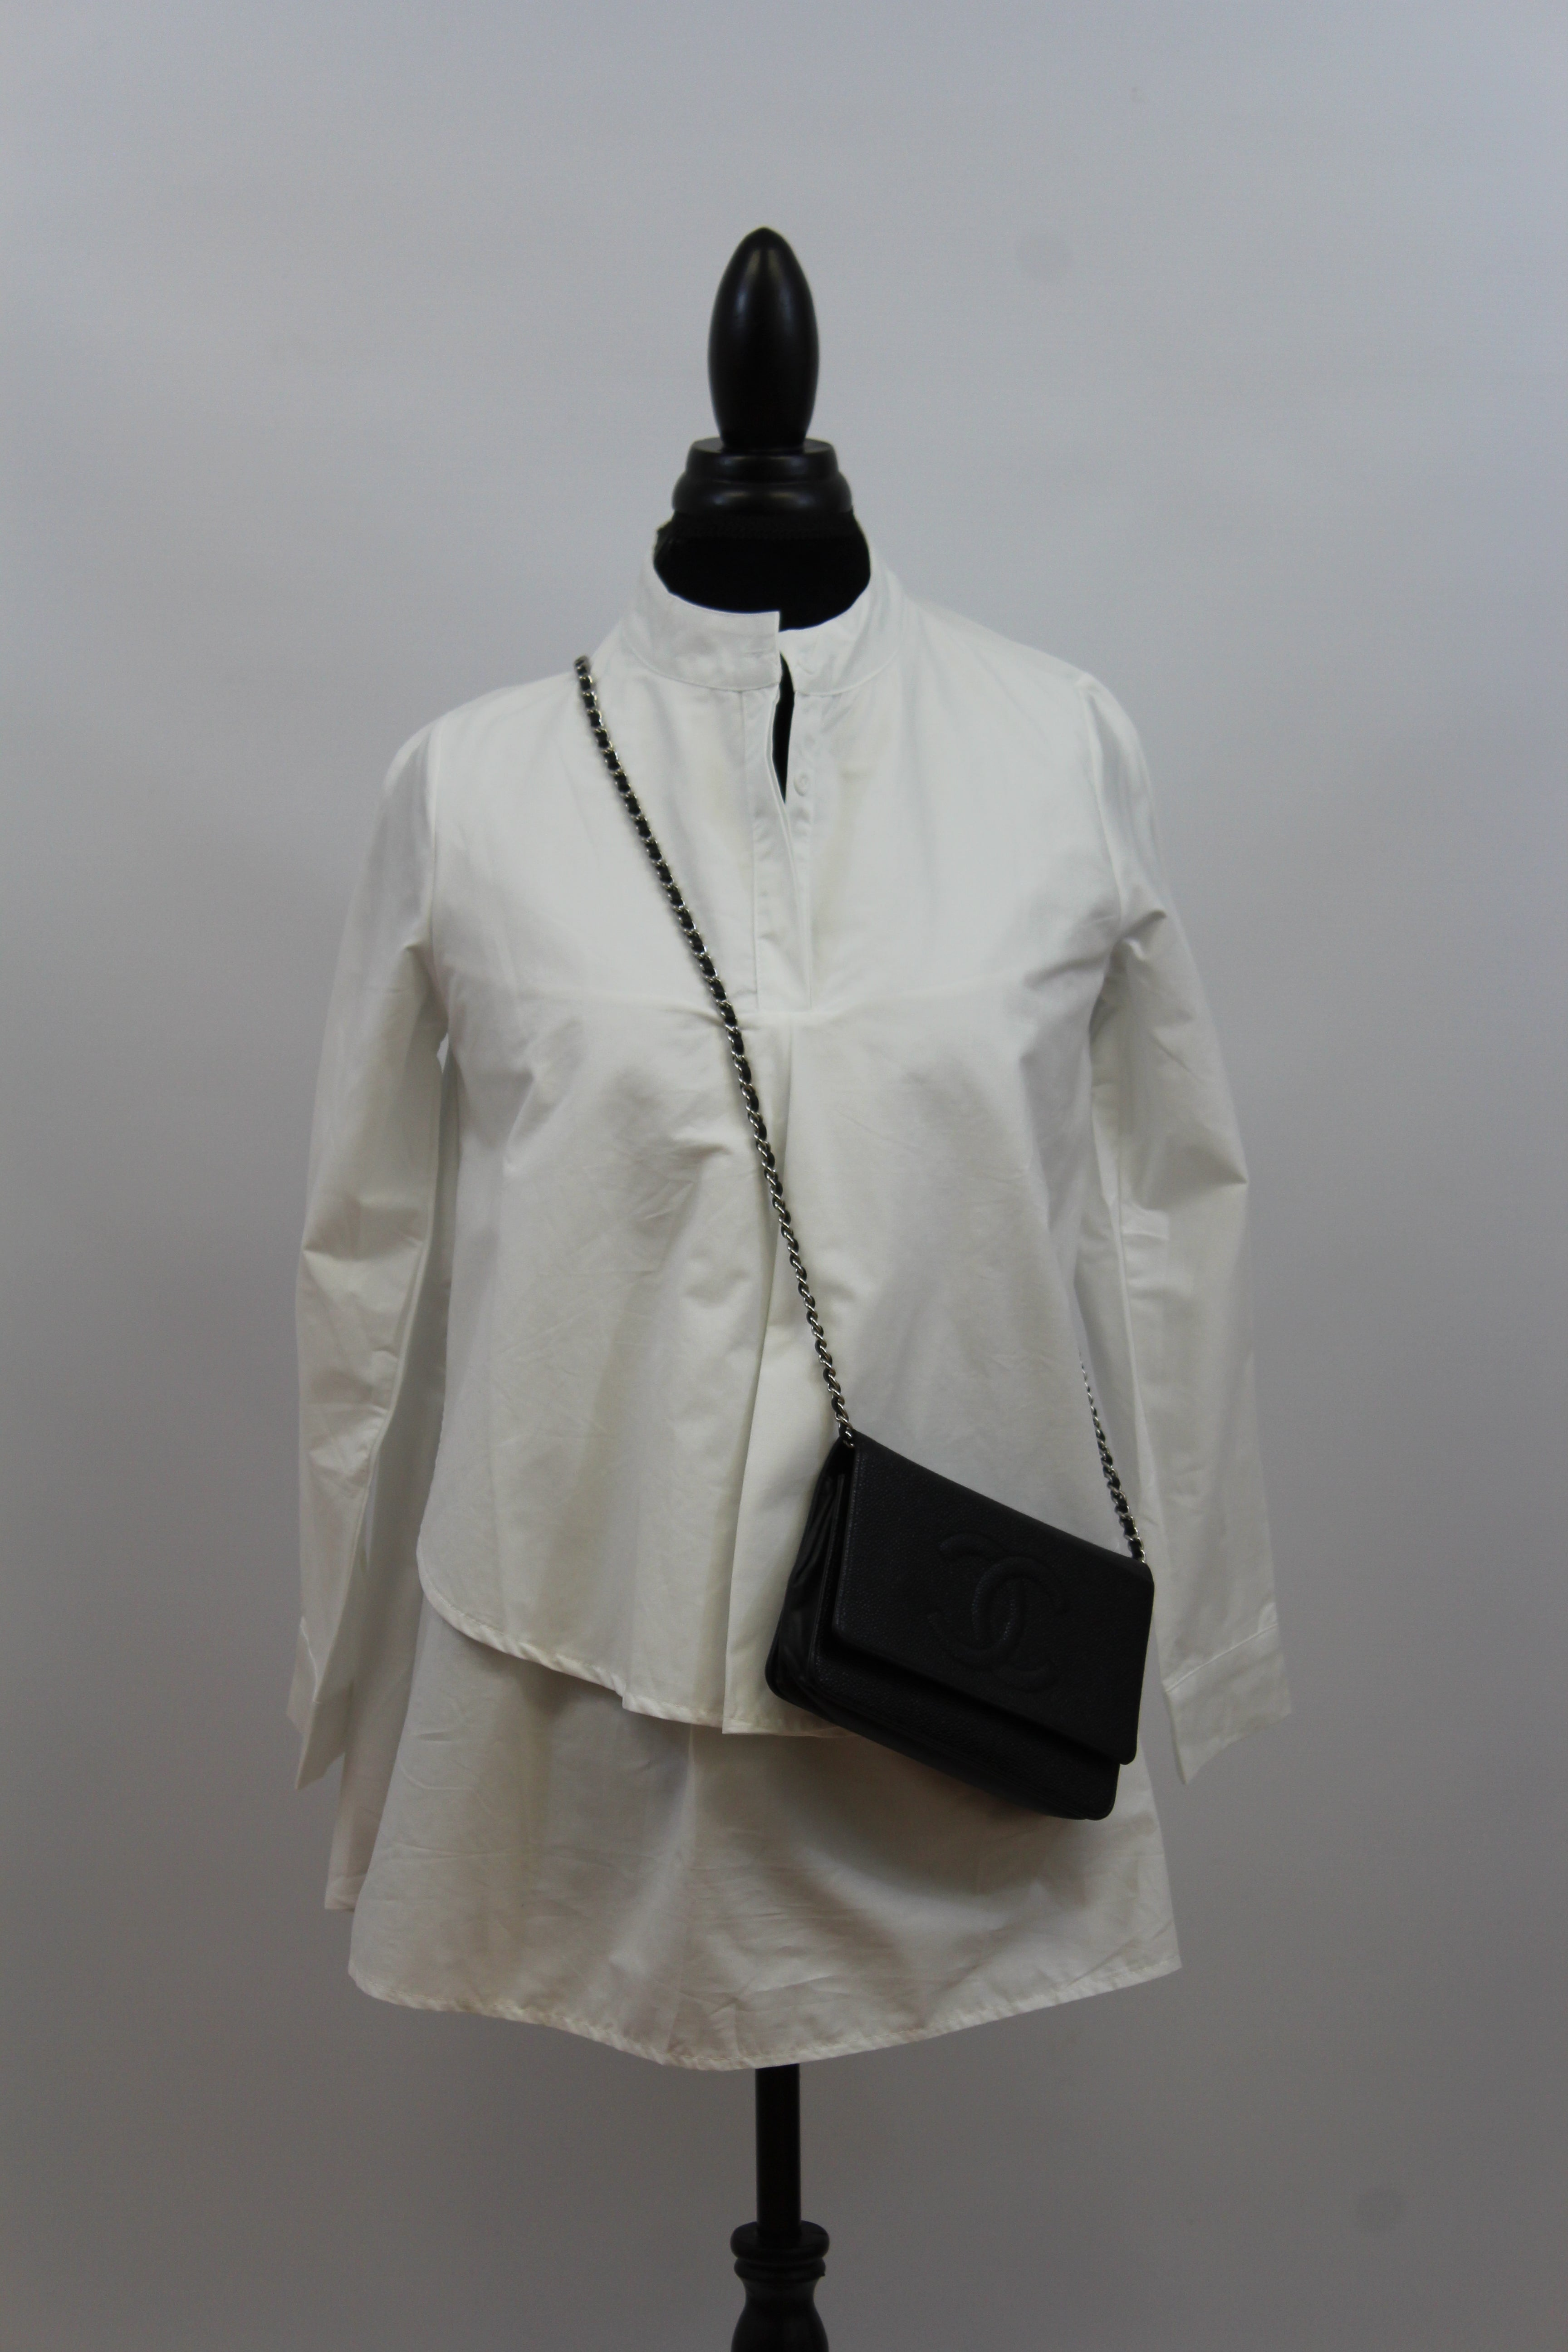 womens black white long sleeve blouse slenderizing fitted flowy double layered button down nordstrom chicos calvin klein cotton tunic